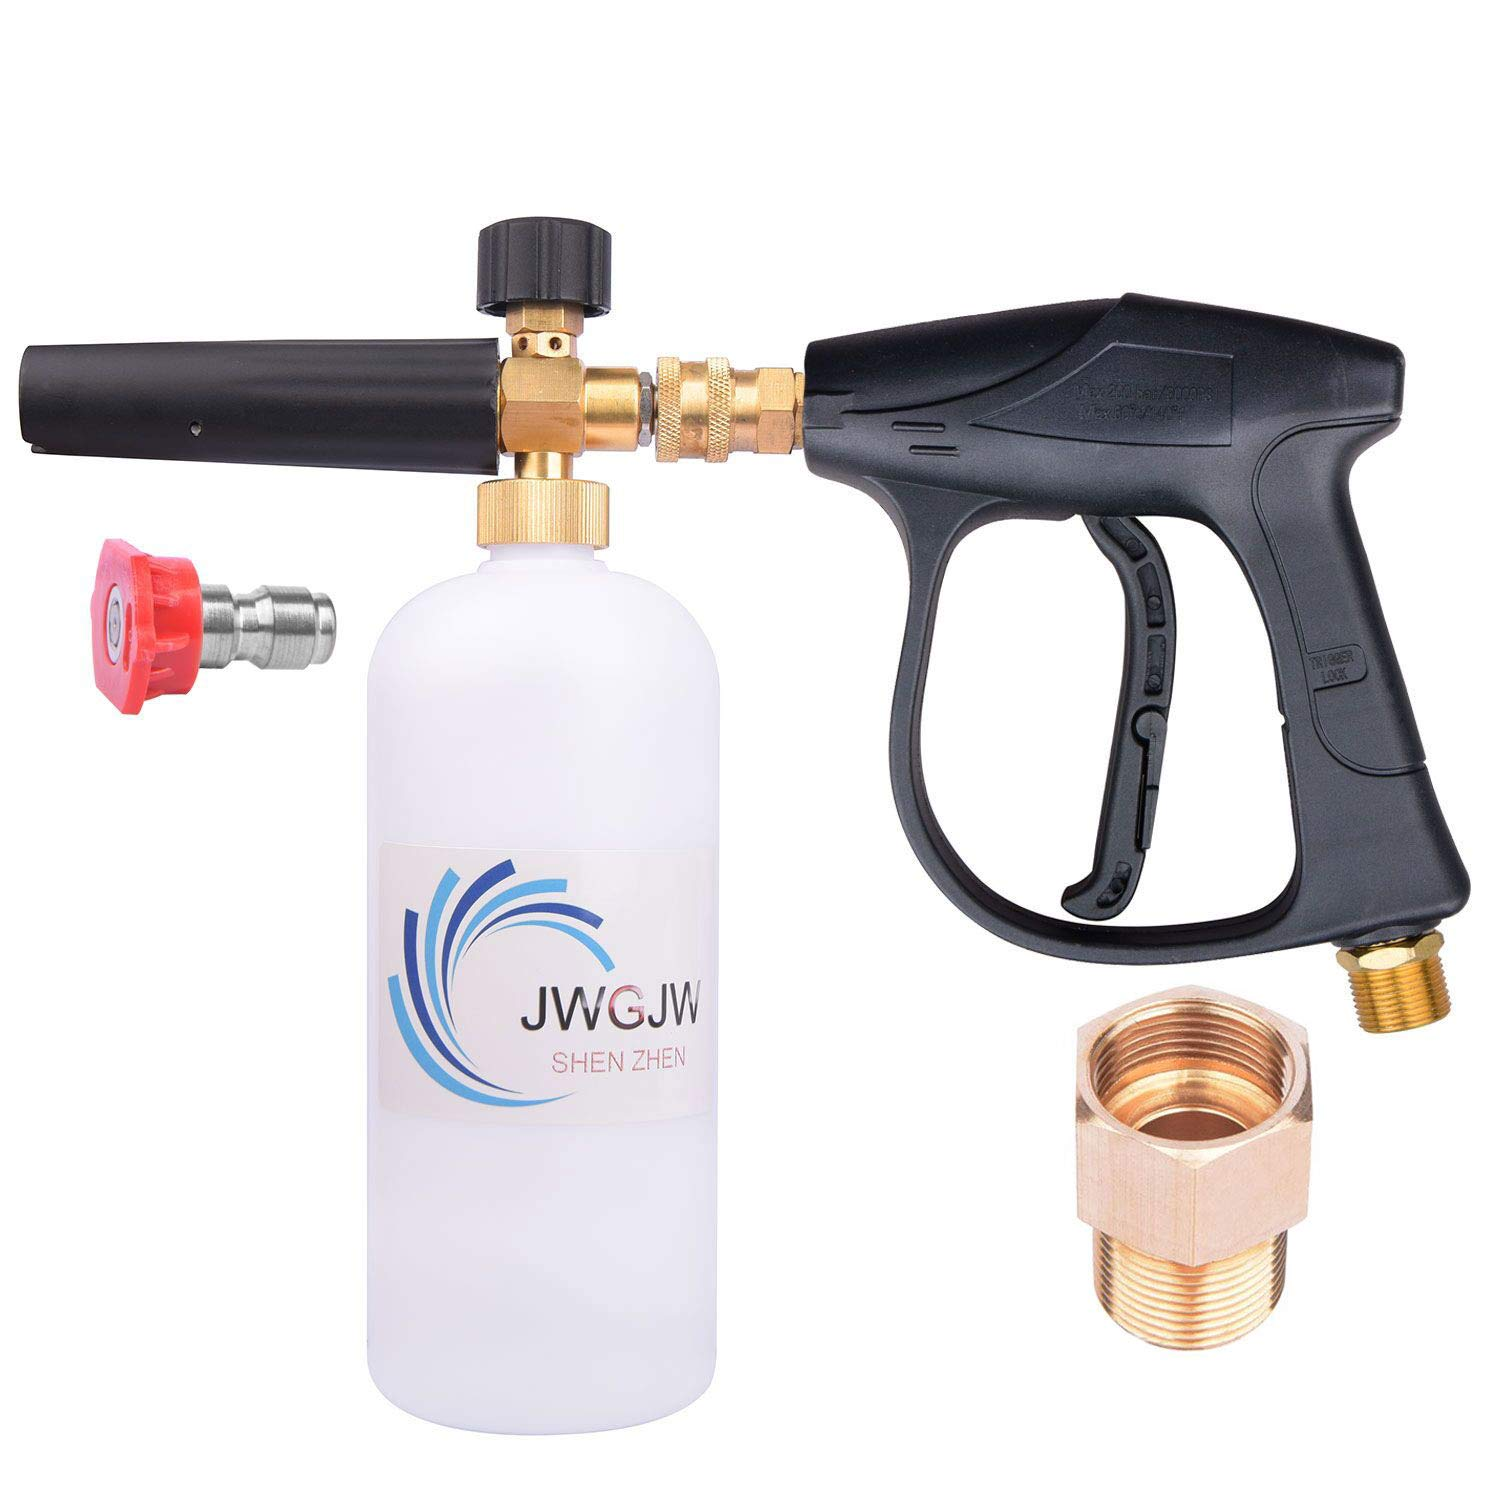 JWGJW 166 High Pressure Washer Gun Snow Foam Lance Cannon Foam and M22 Thread Adapter (15mm-14mm) and A Water Nozzle